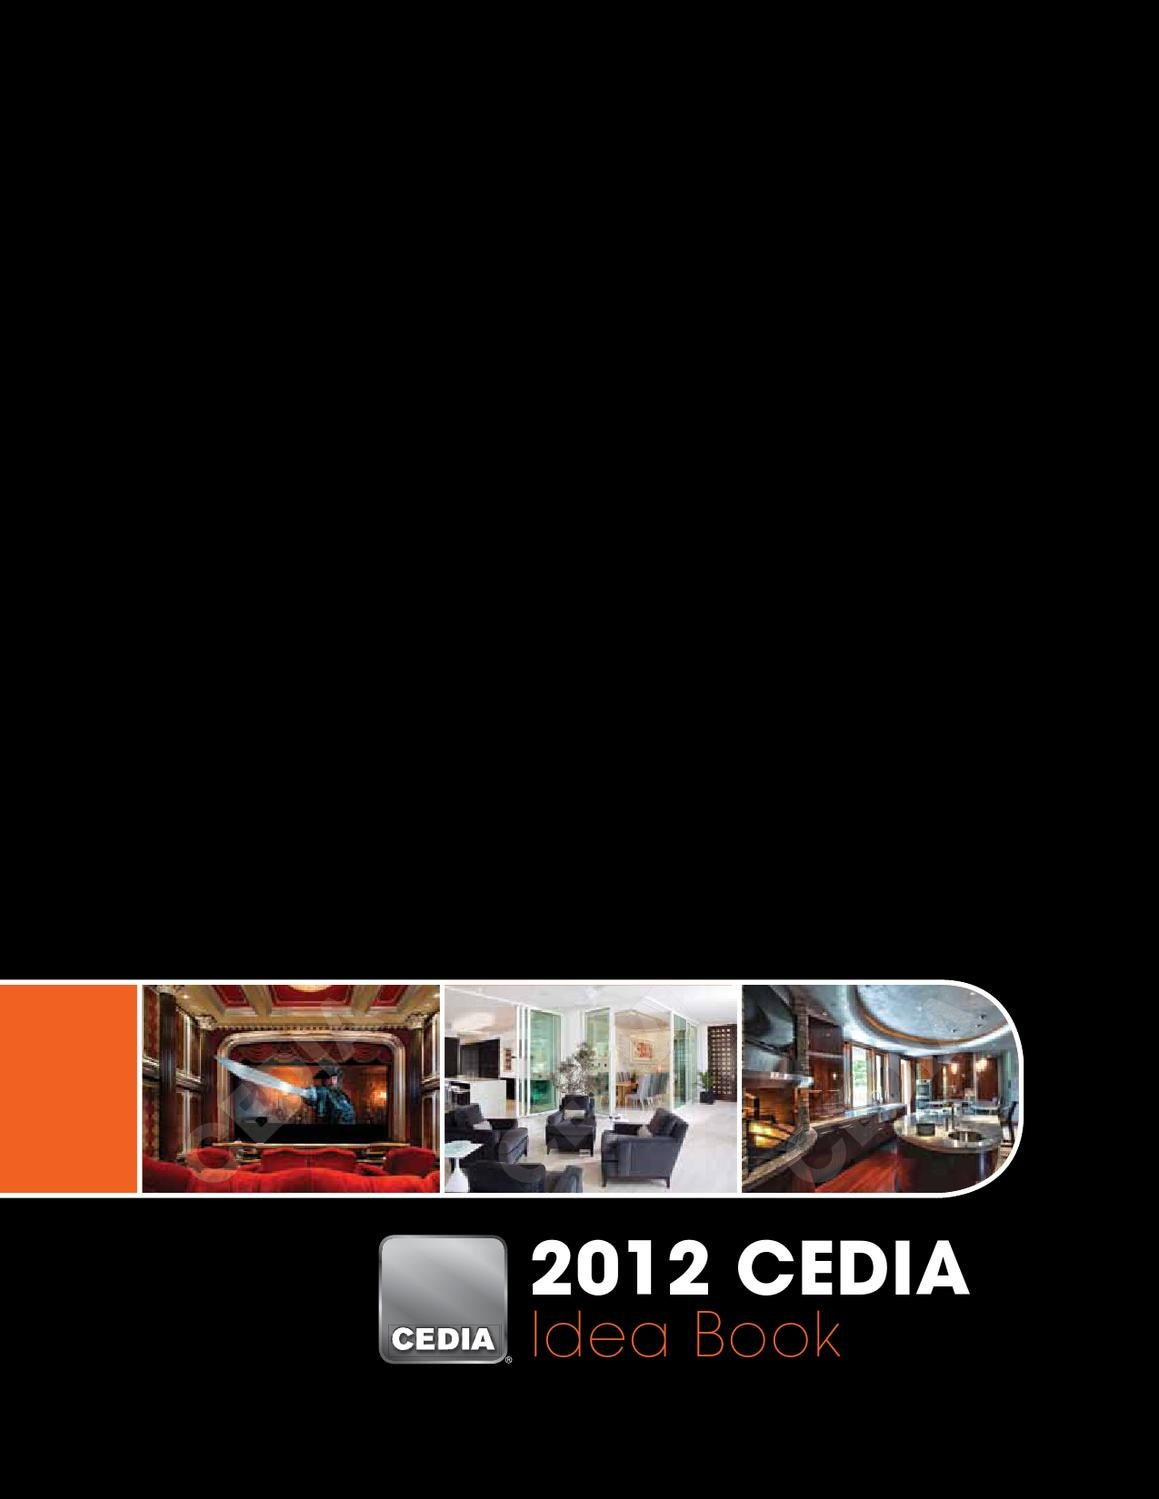 Cedia 2012 Idea Book By Elytronic Issuu Crestron Cls C6 Wiring Diagram